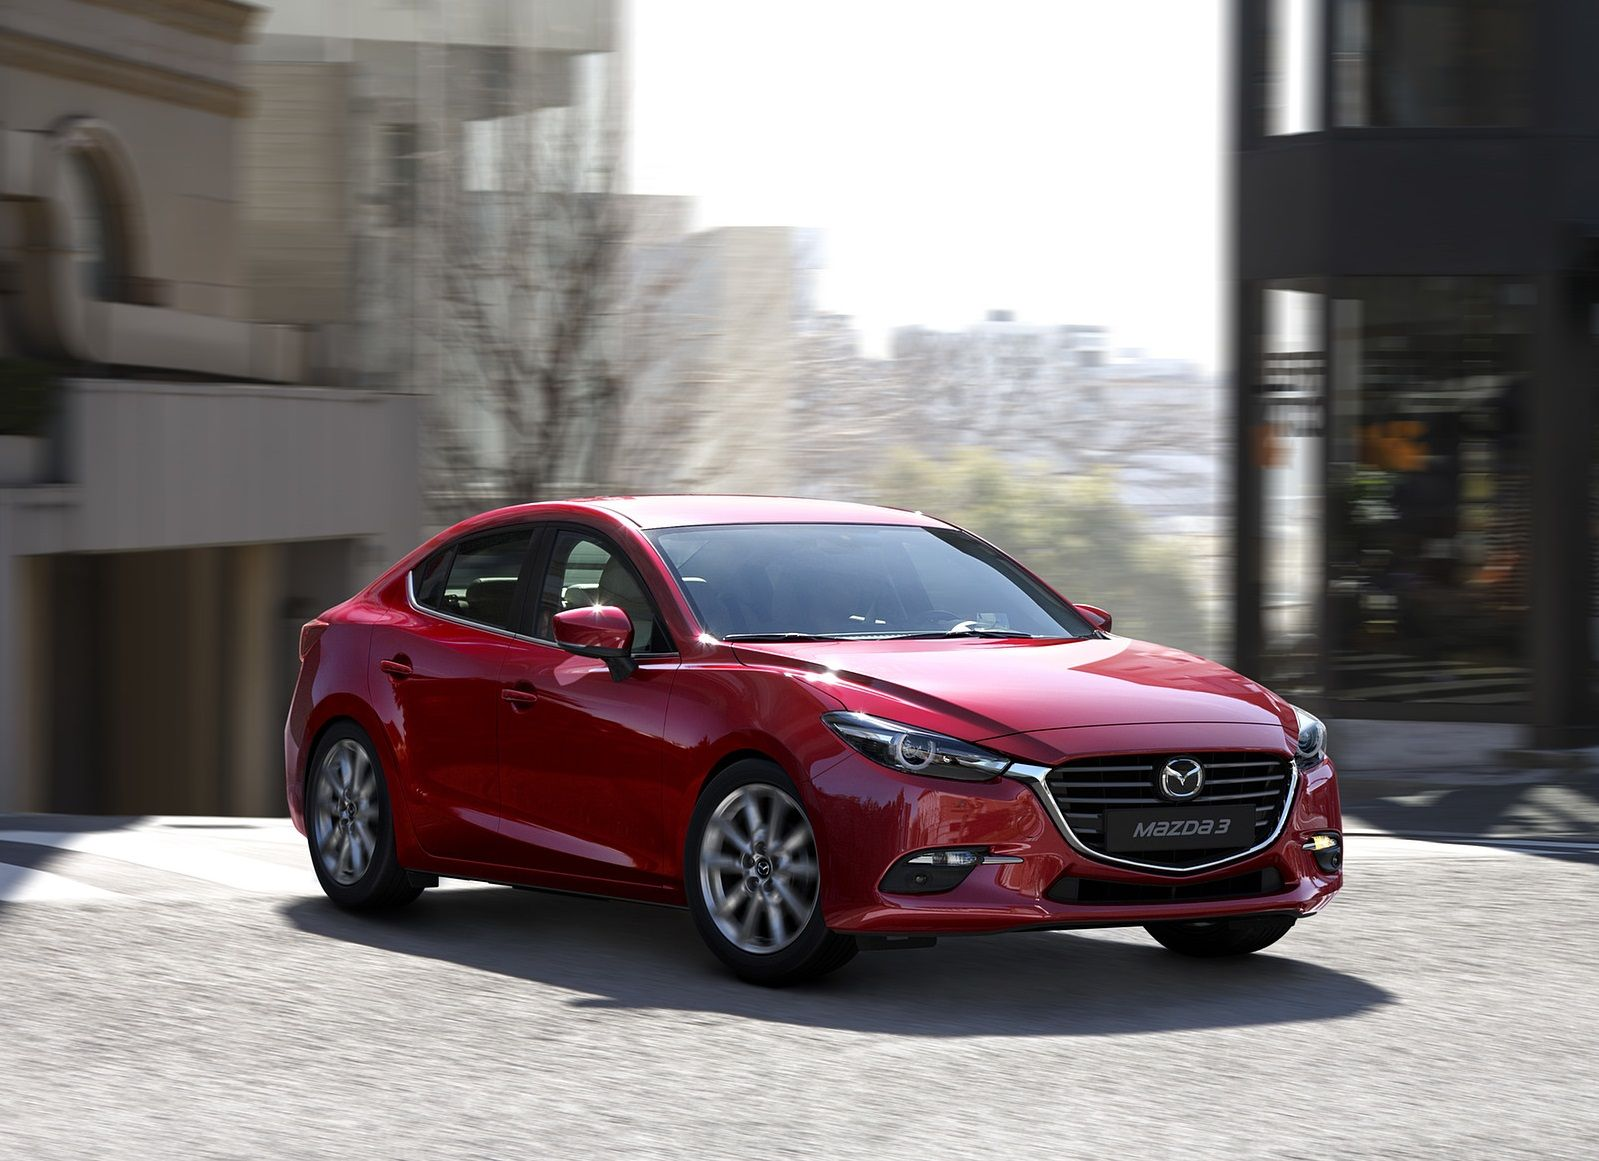 2018 mazda 3 redesign concept price http www